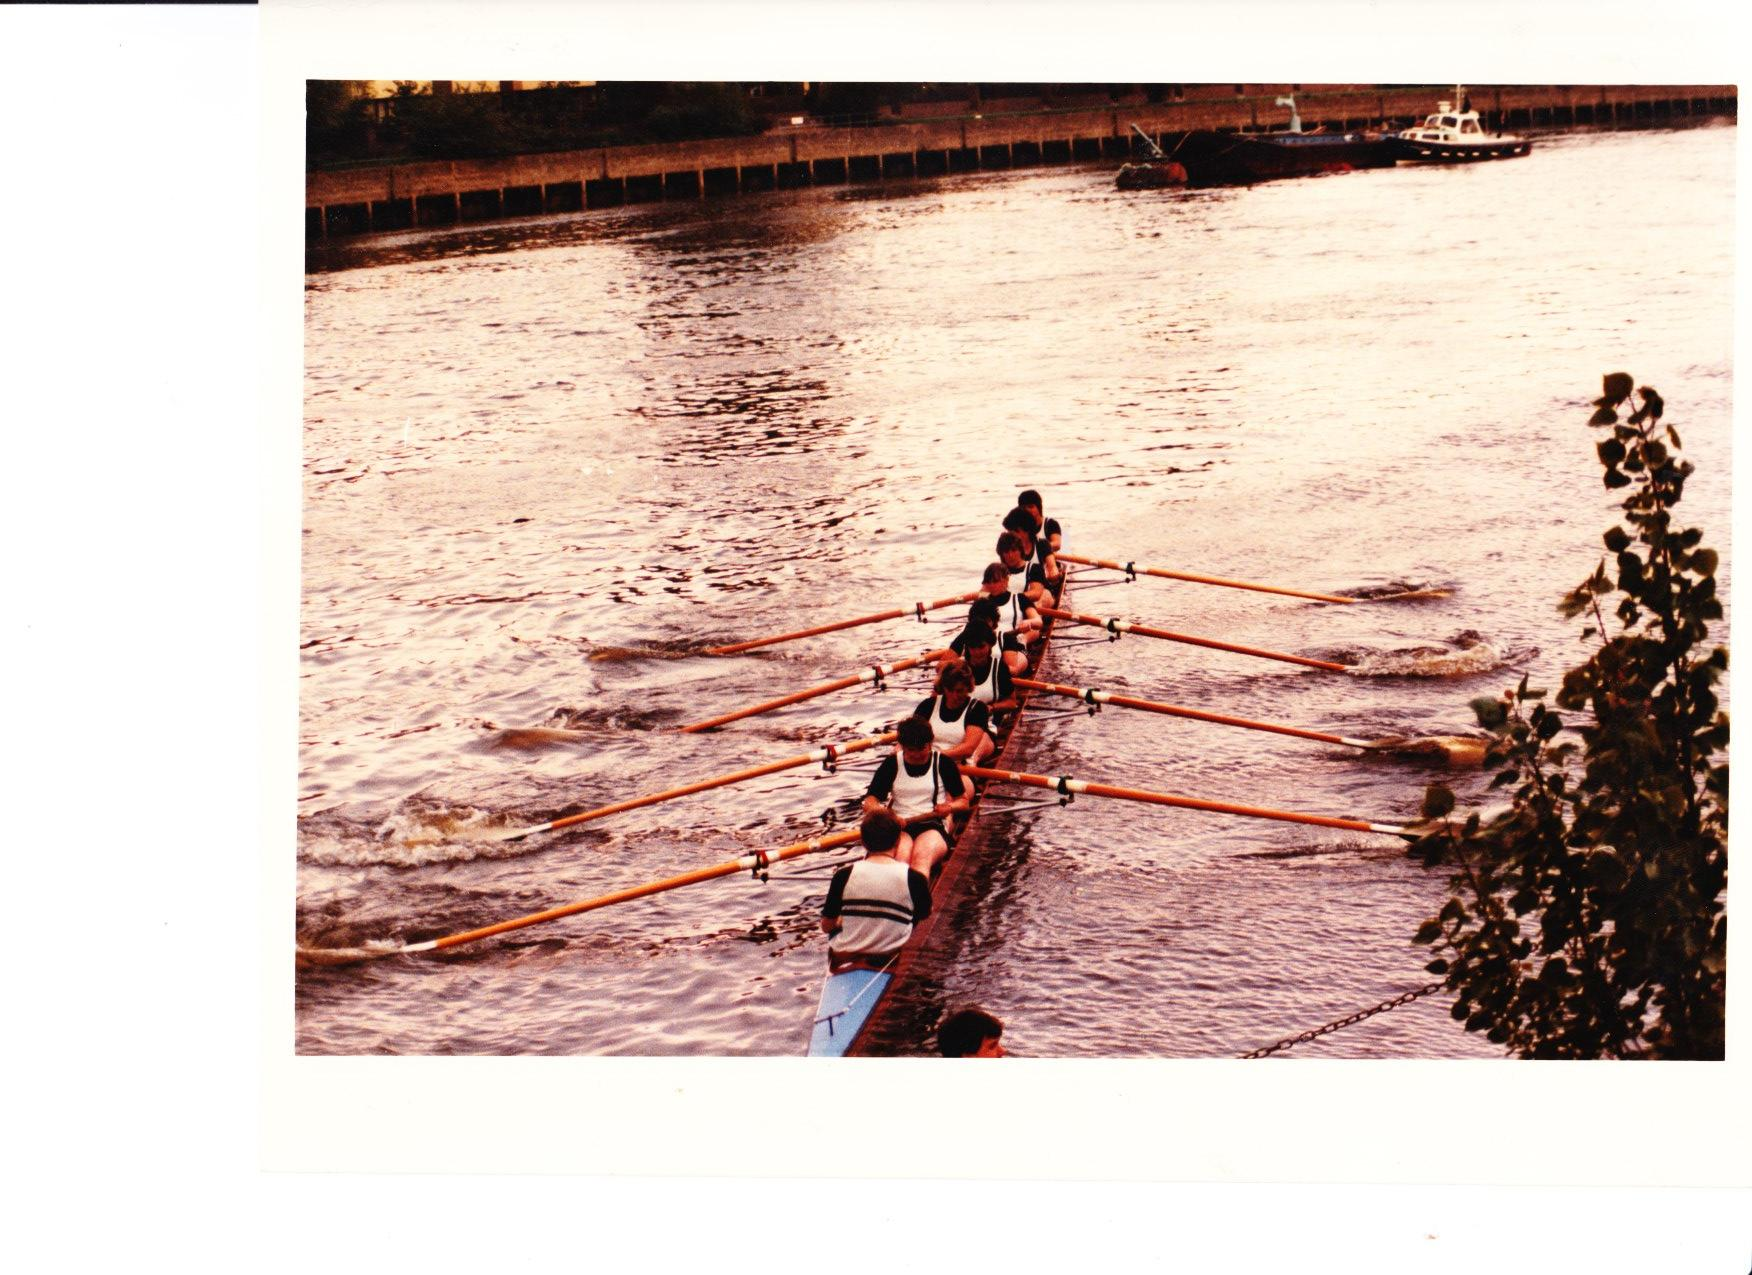 Barts_W1_Bumps_1985_first_stroke_off_the_wall